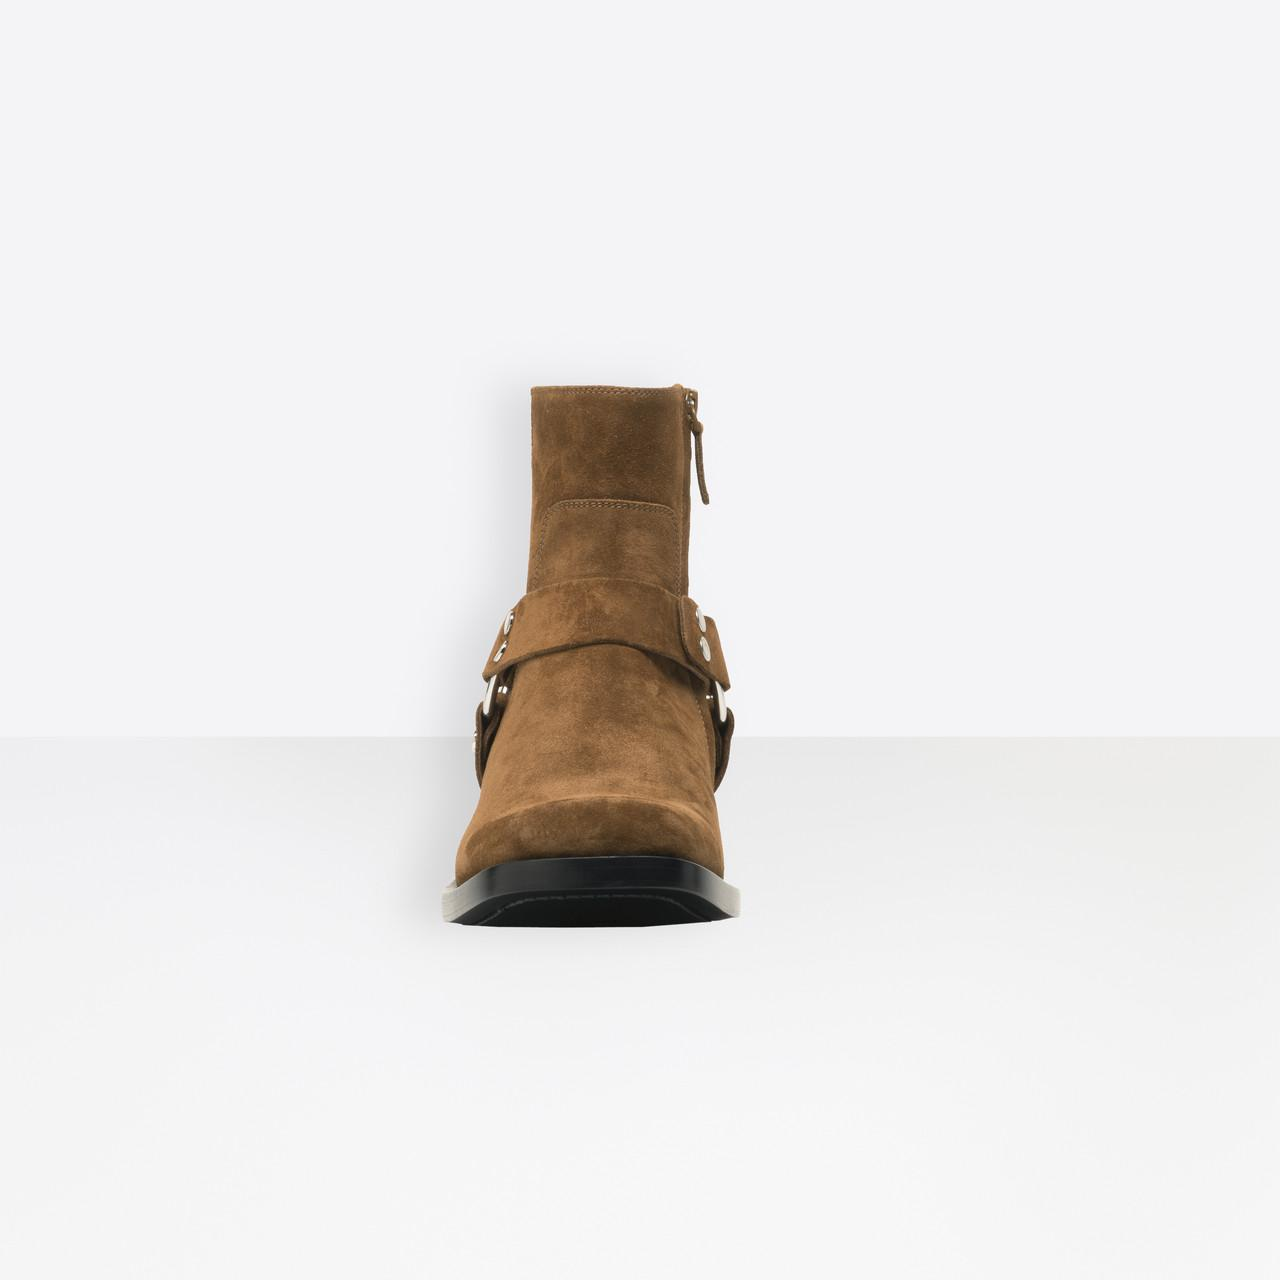 Balenciaga Leather Rider Boots in Brown